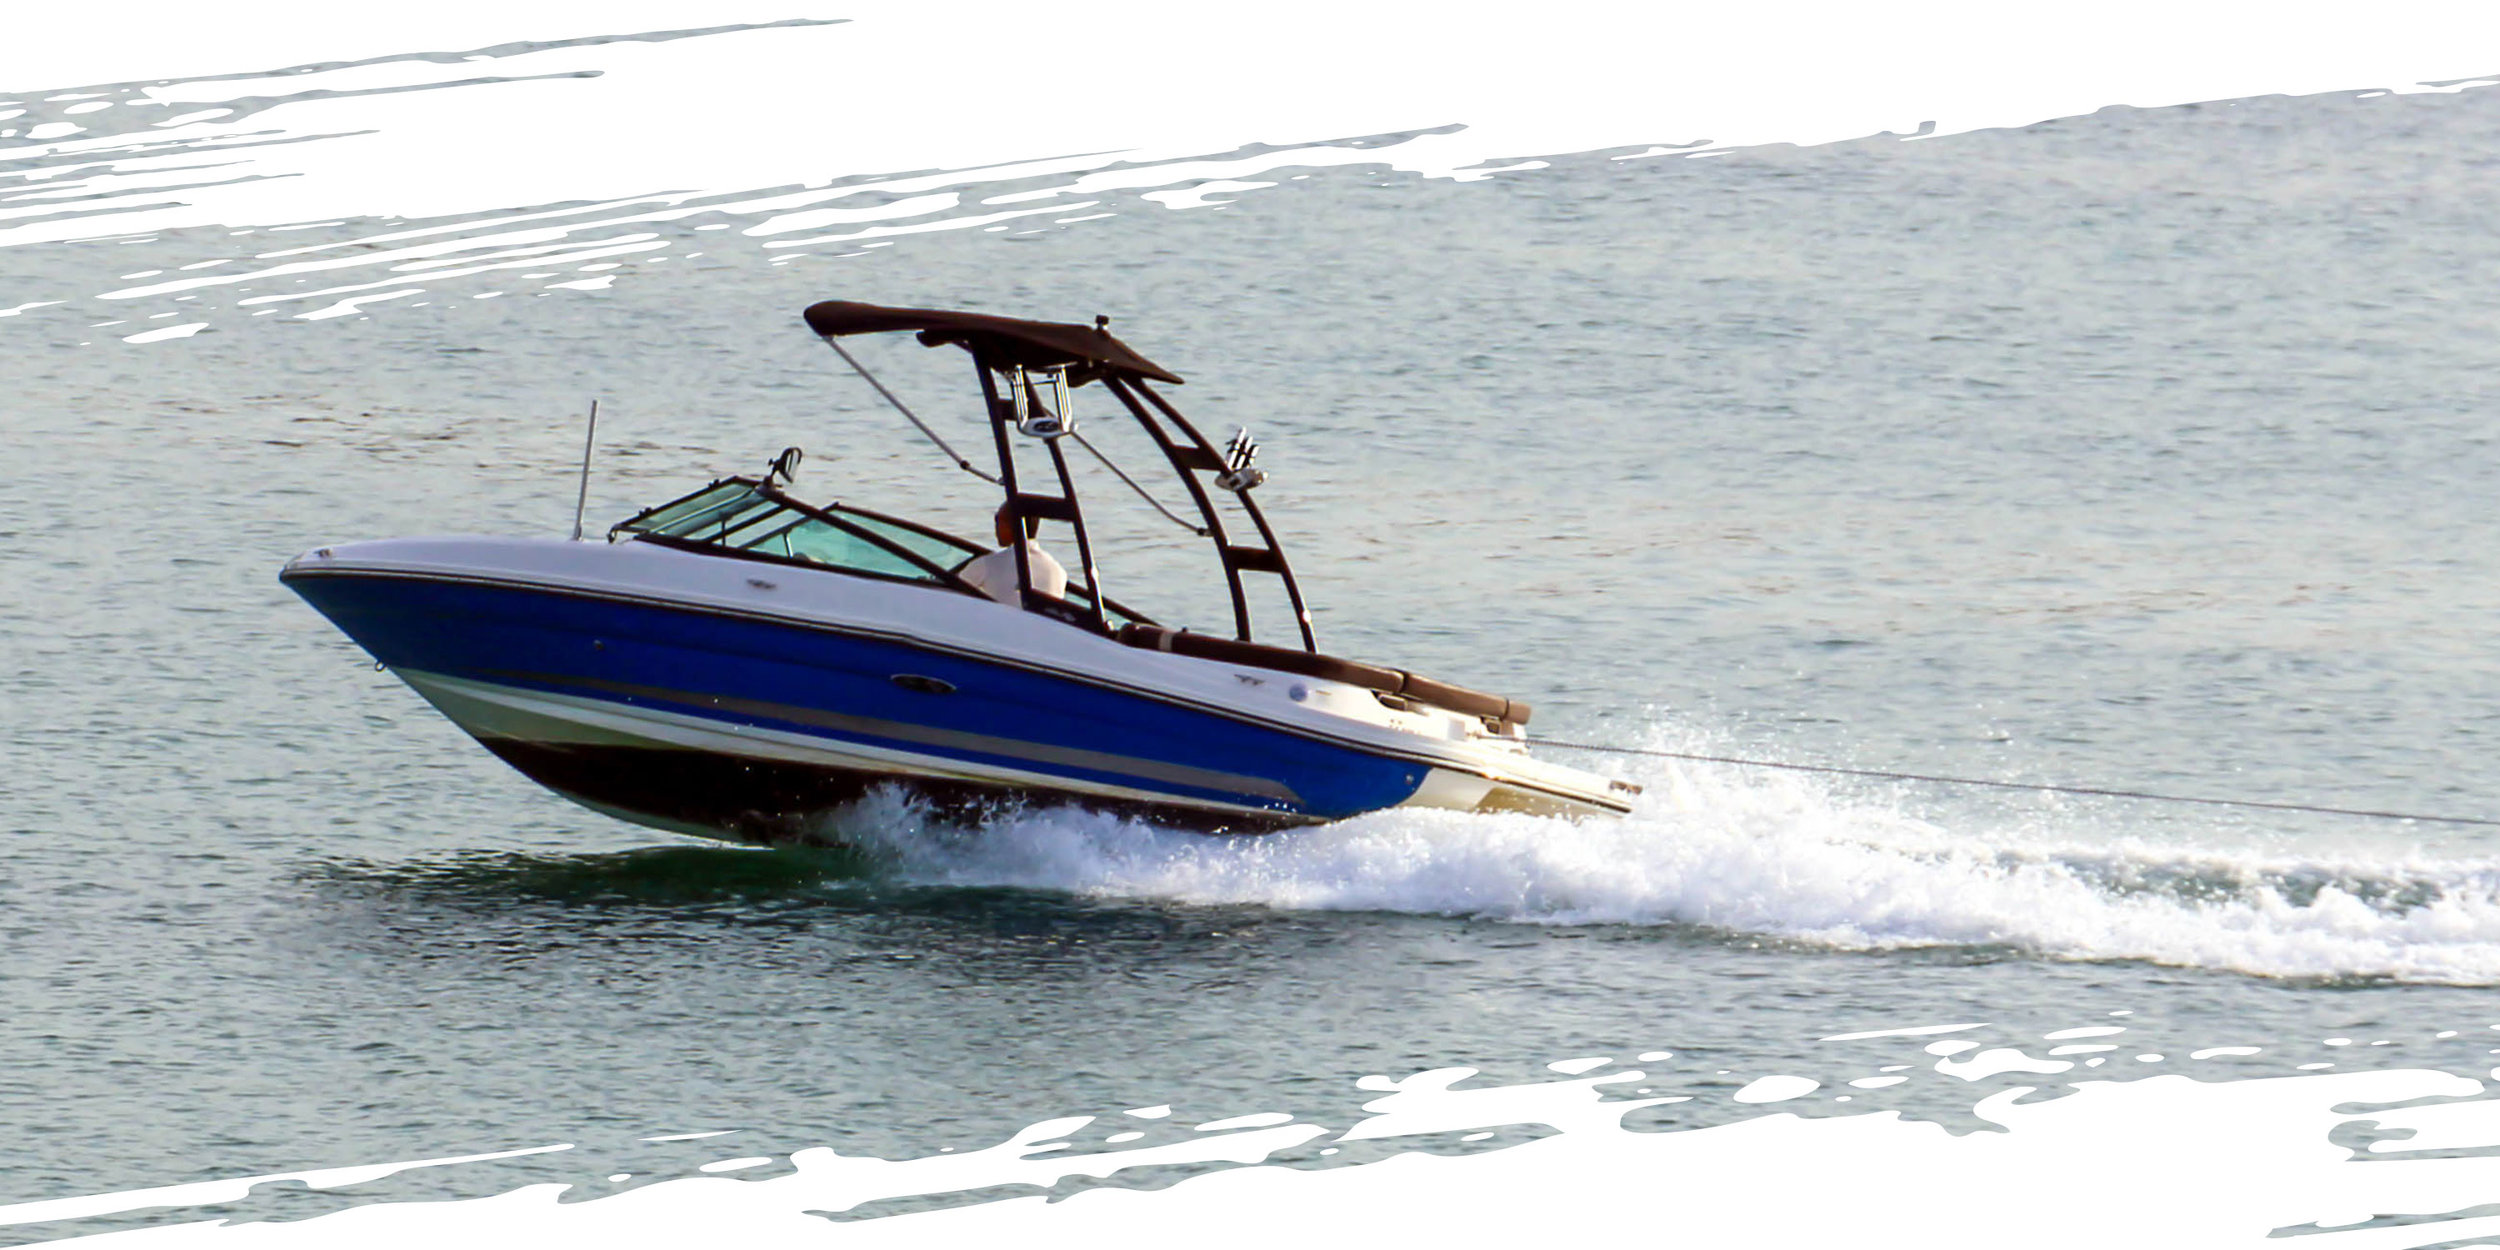 seaforth_header_powerboats-v2.jpg